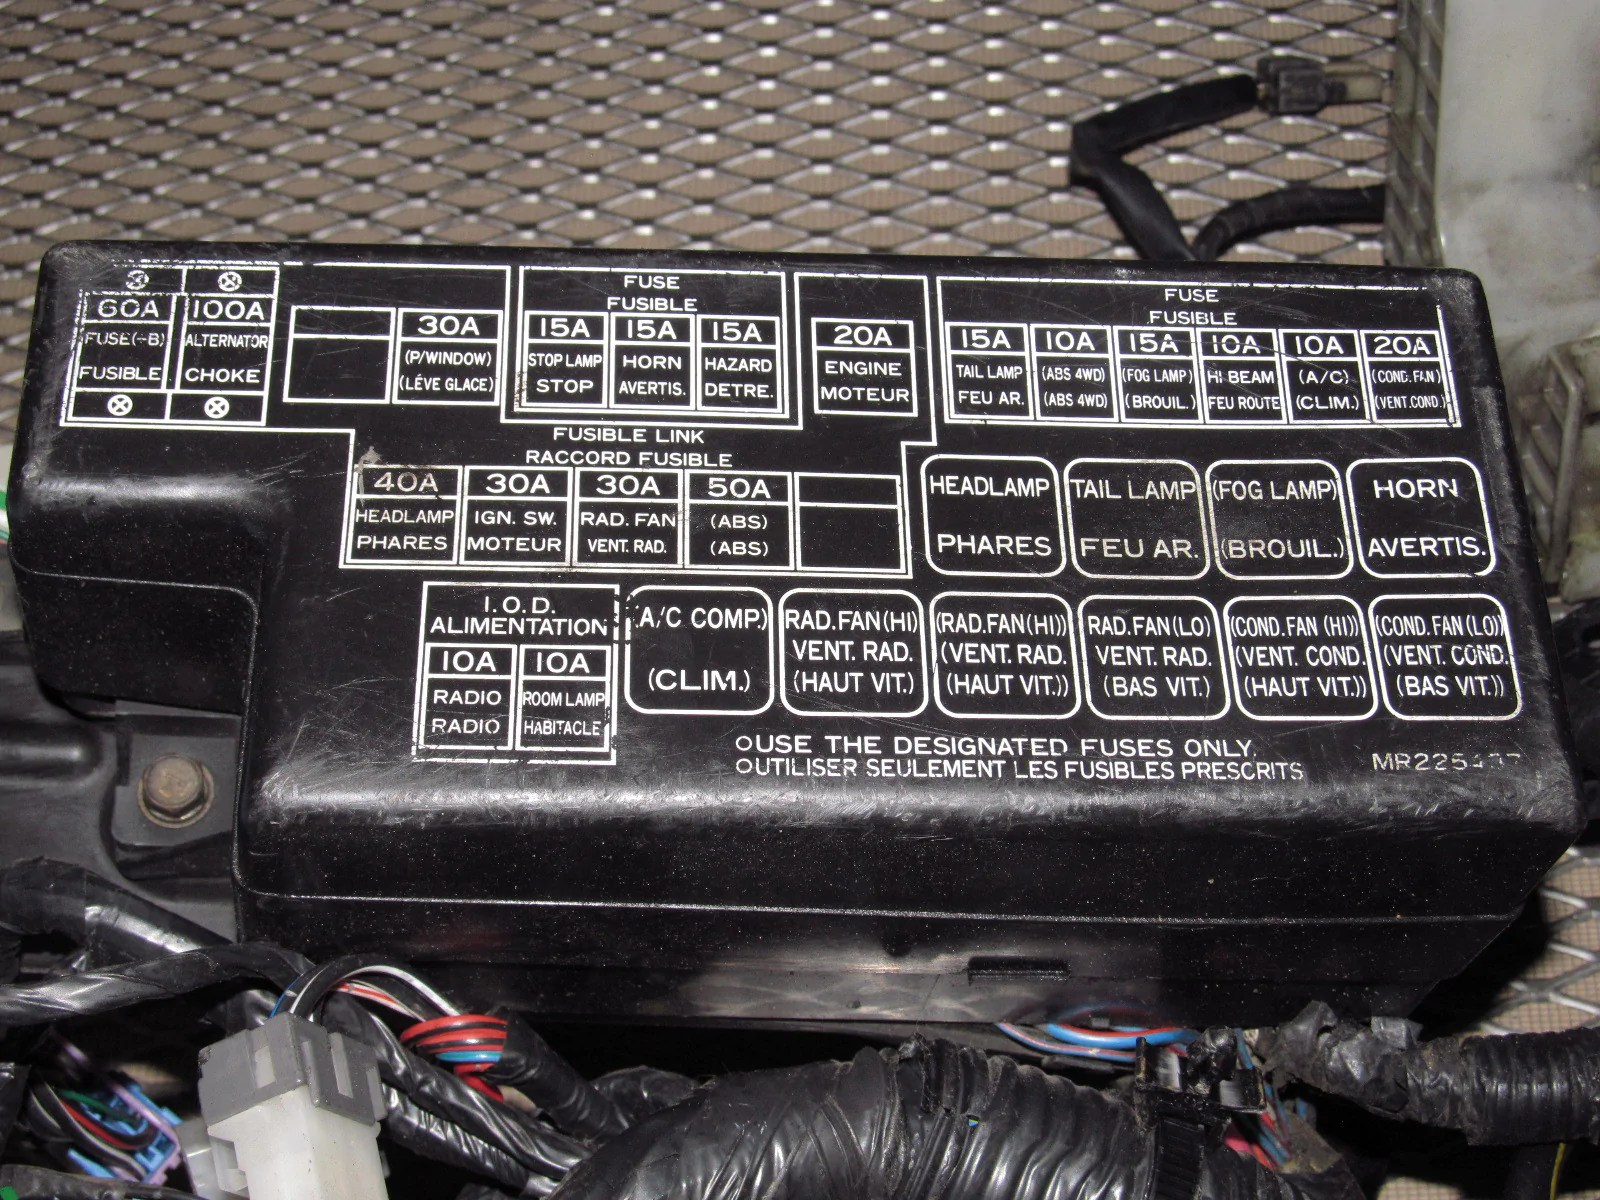 1999 Mitsubishi Eclipse Radio Wiring Diagram